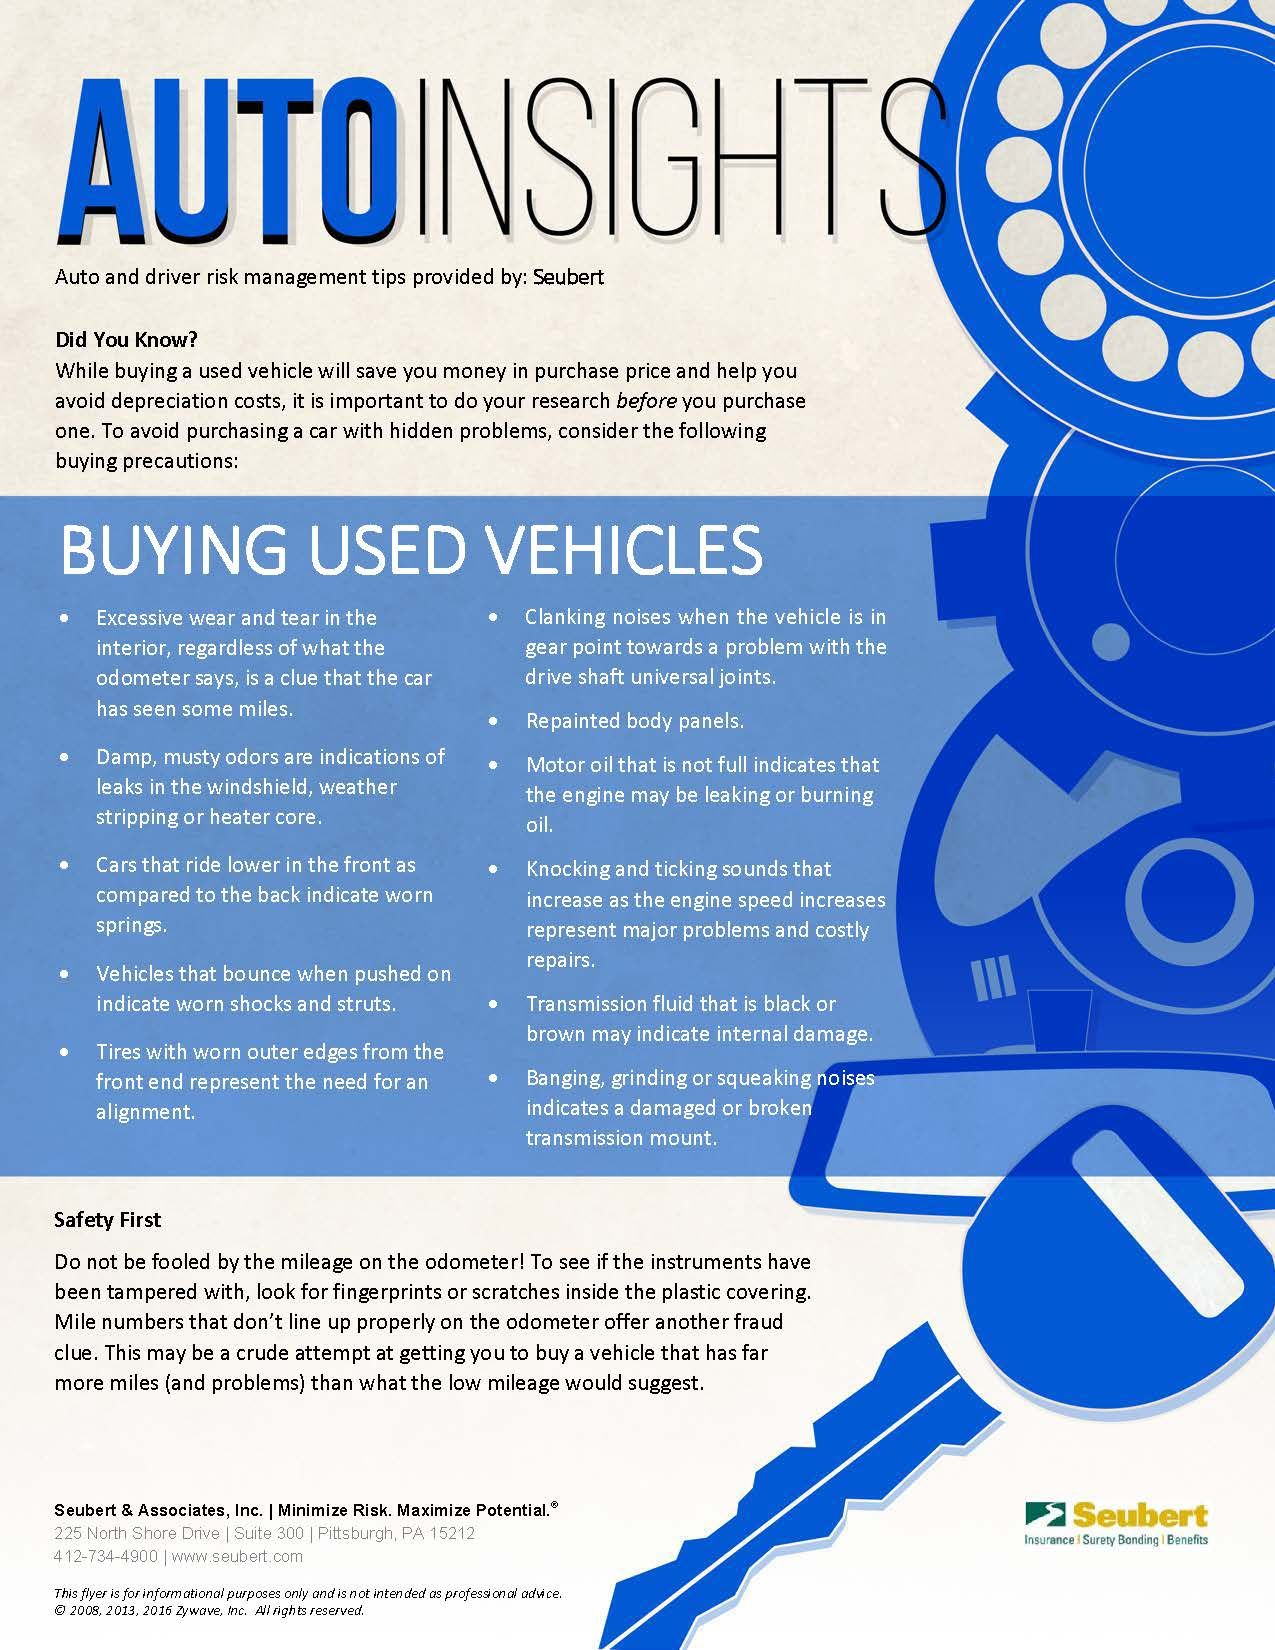 Auto insights buying used vehicles driving driving